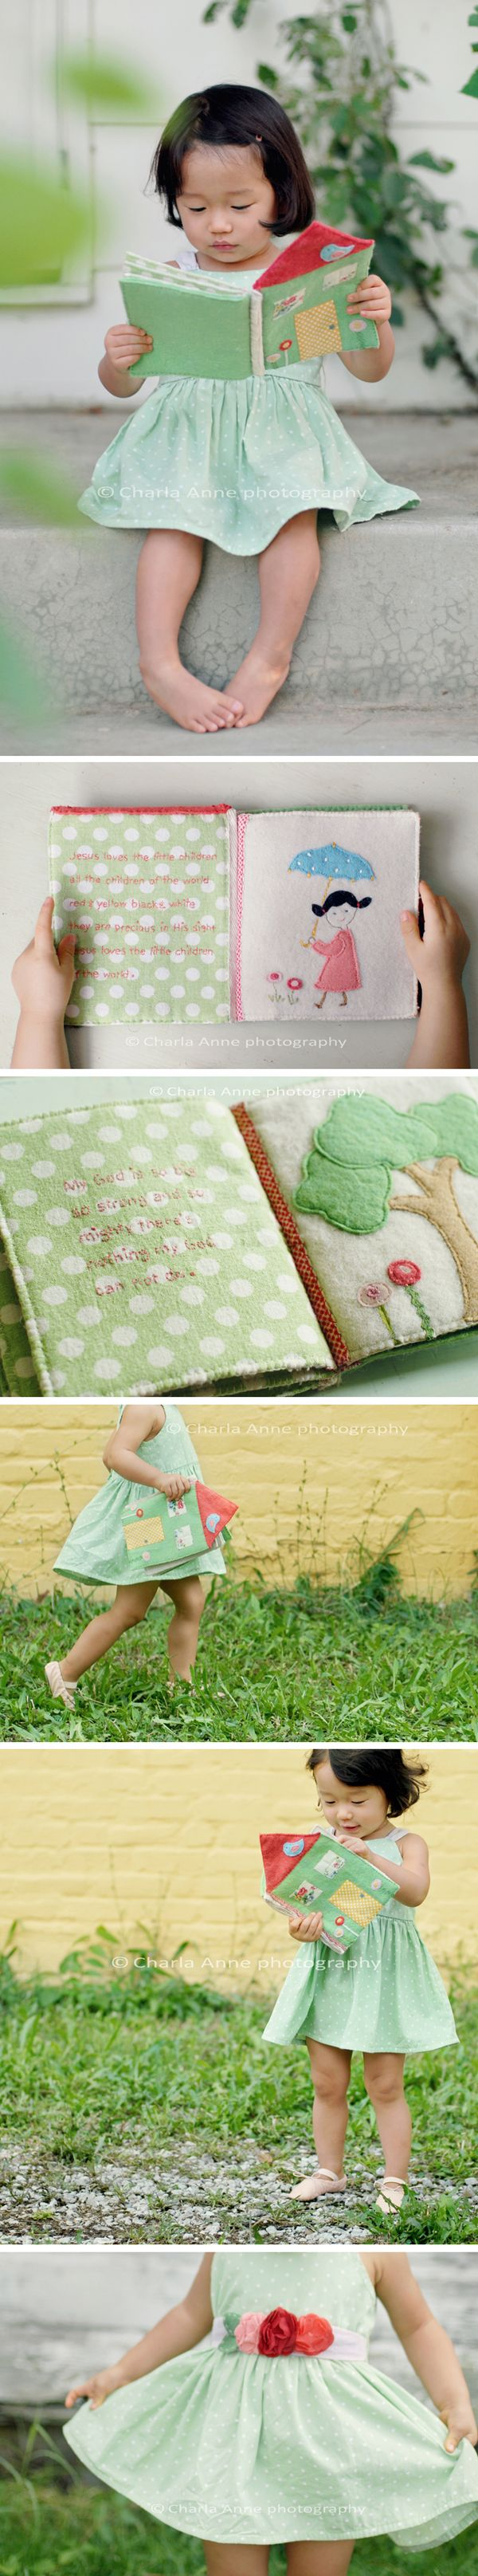 I like the idea behind this book...I would pick a song that the child loves and create it based off this idea.